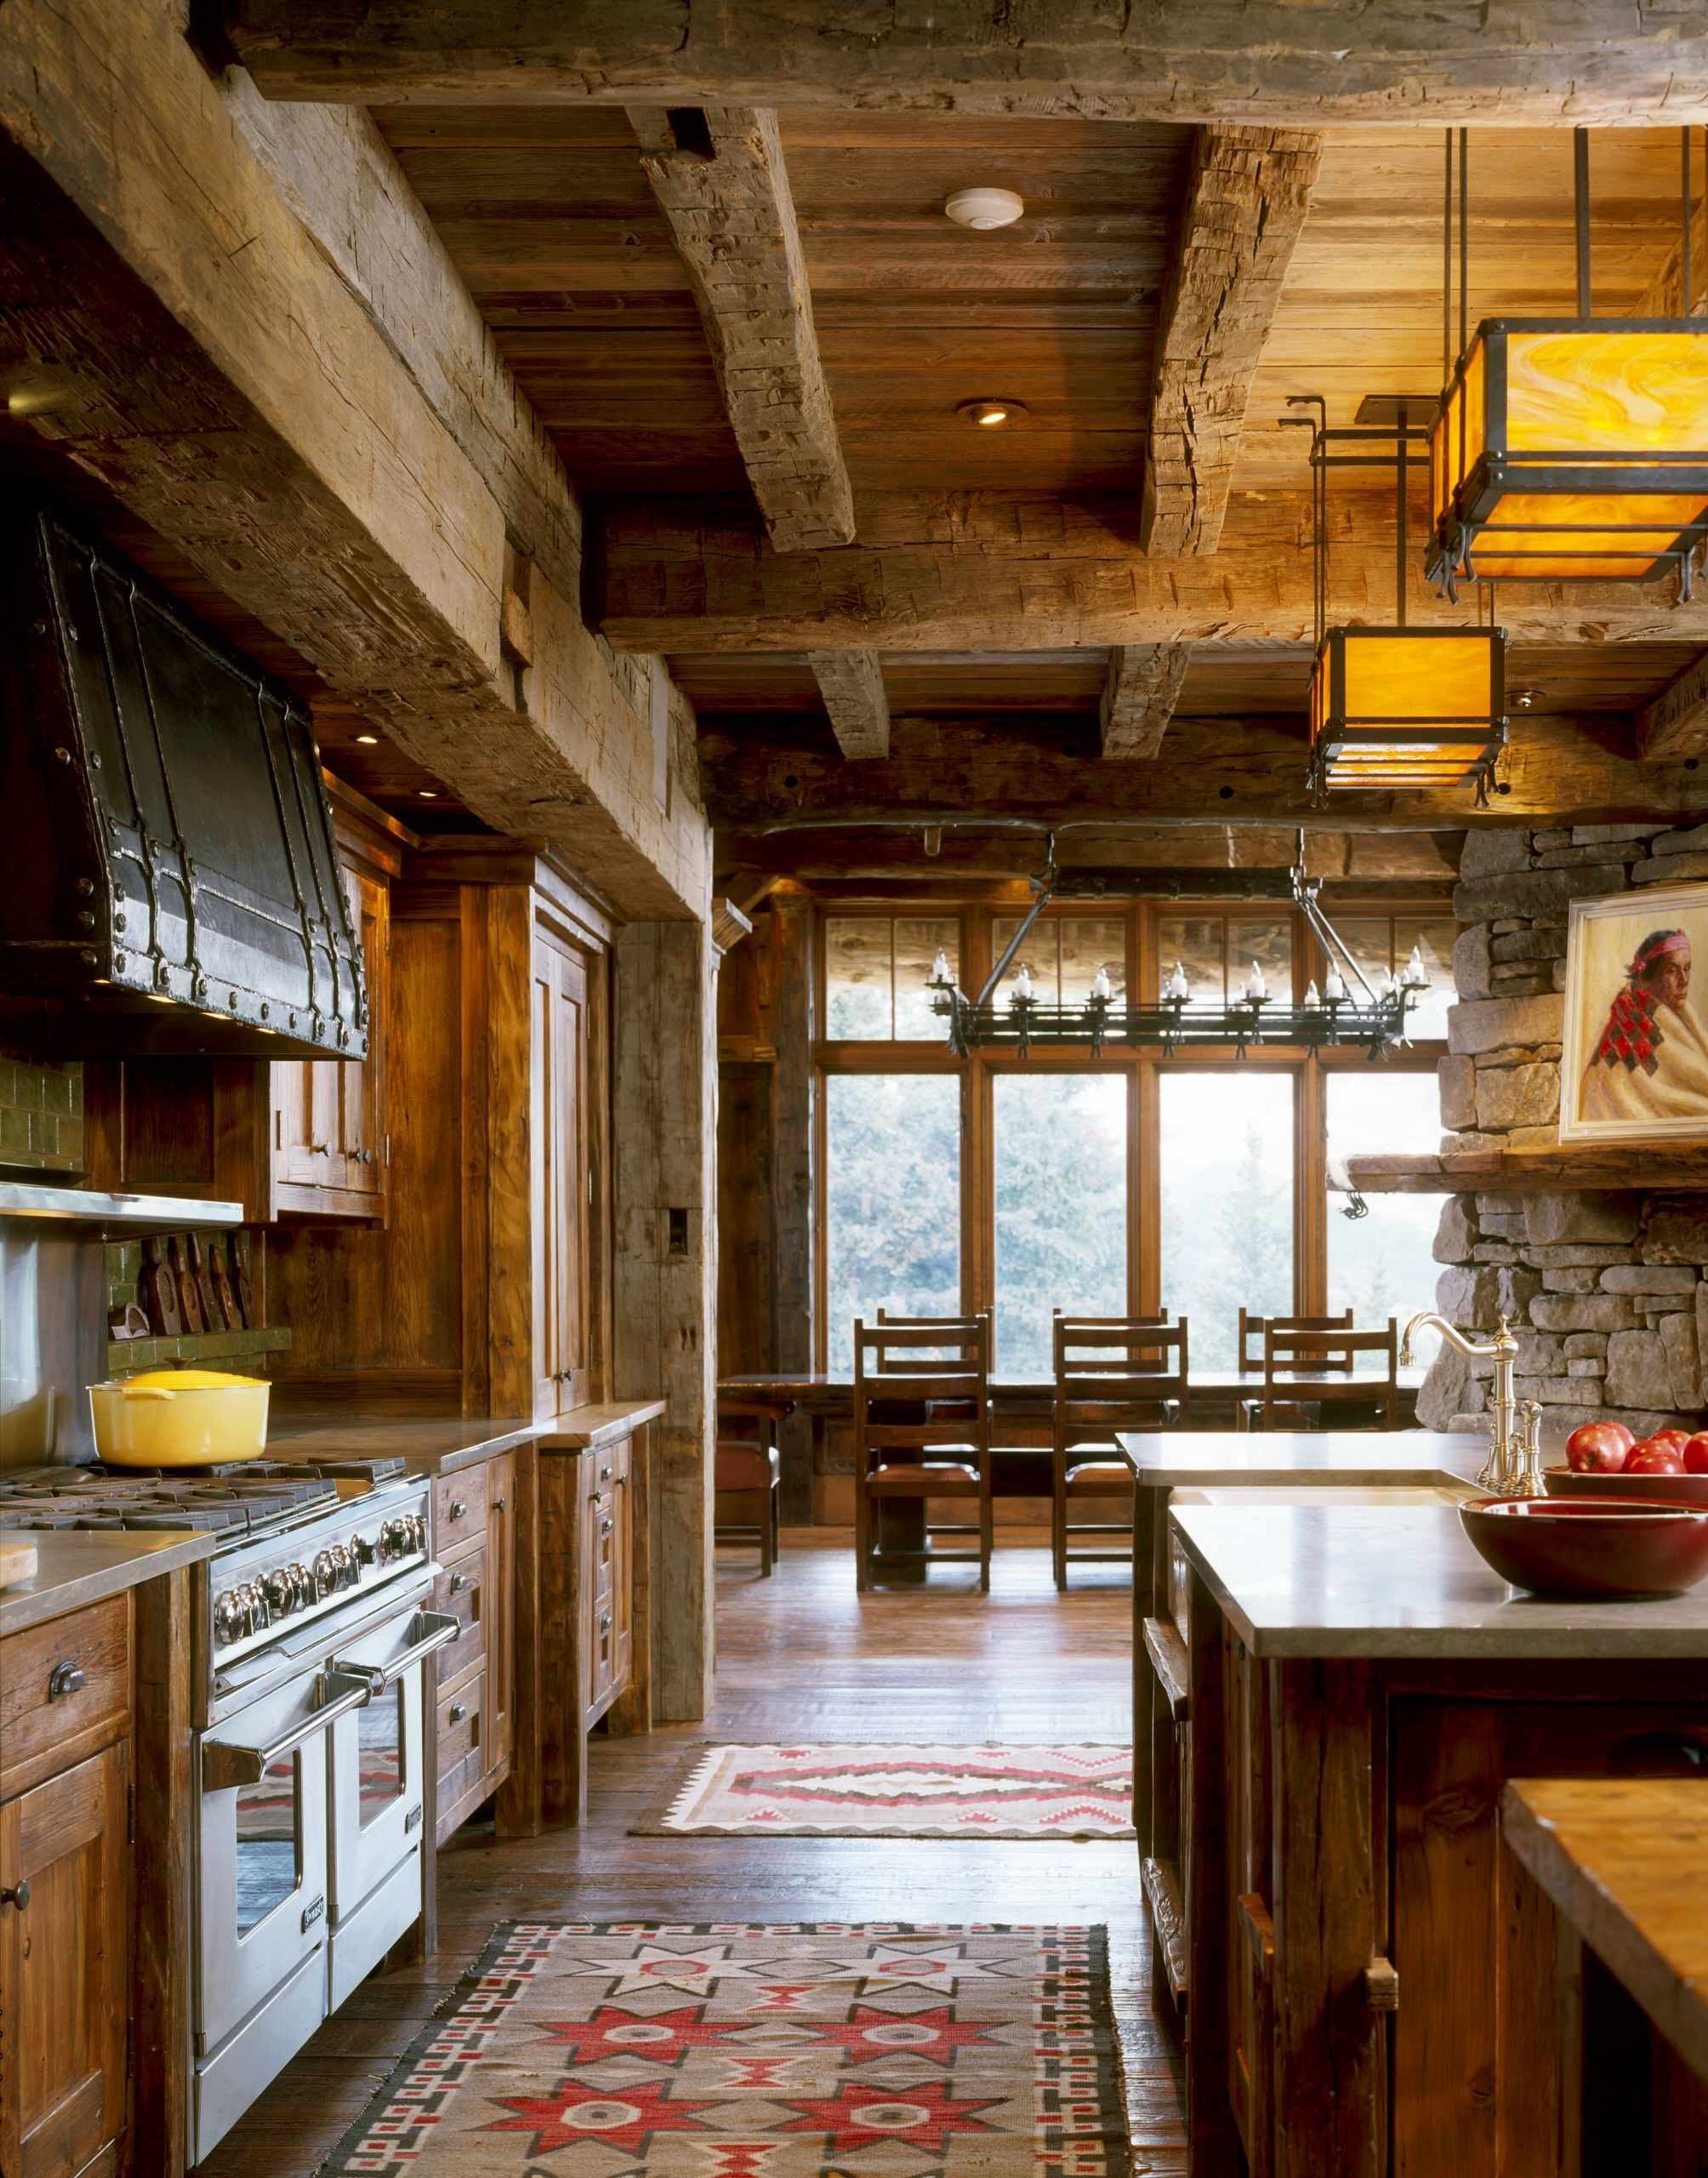 23 Best Ideas Of Rustic Kitchen Cabinet You Ll Want To Copy Rustic Kitchen Design Rustic House Rustic Kitchen